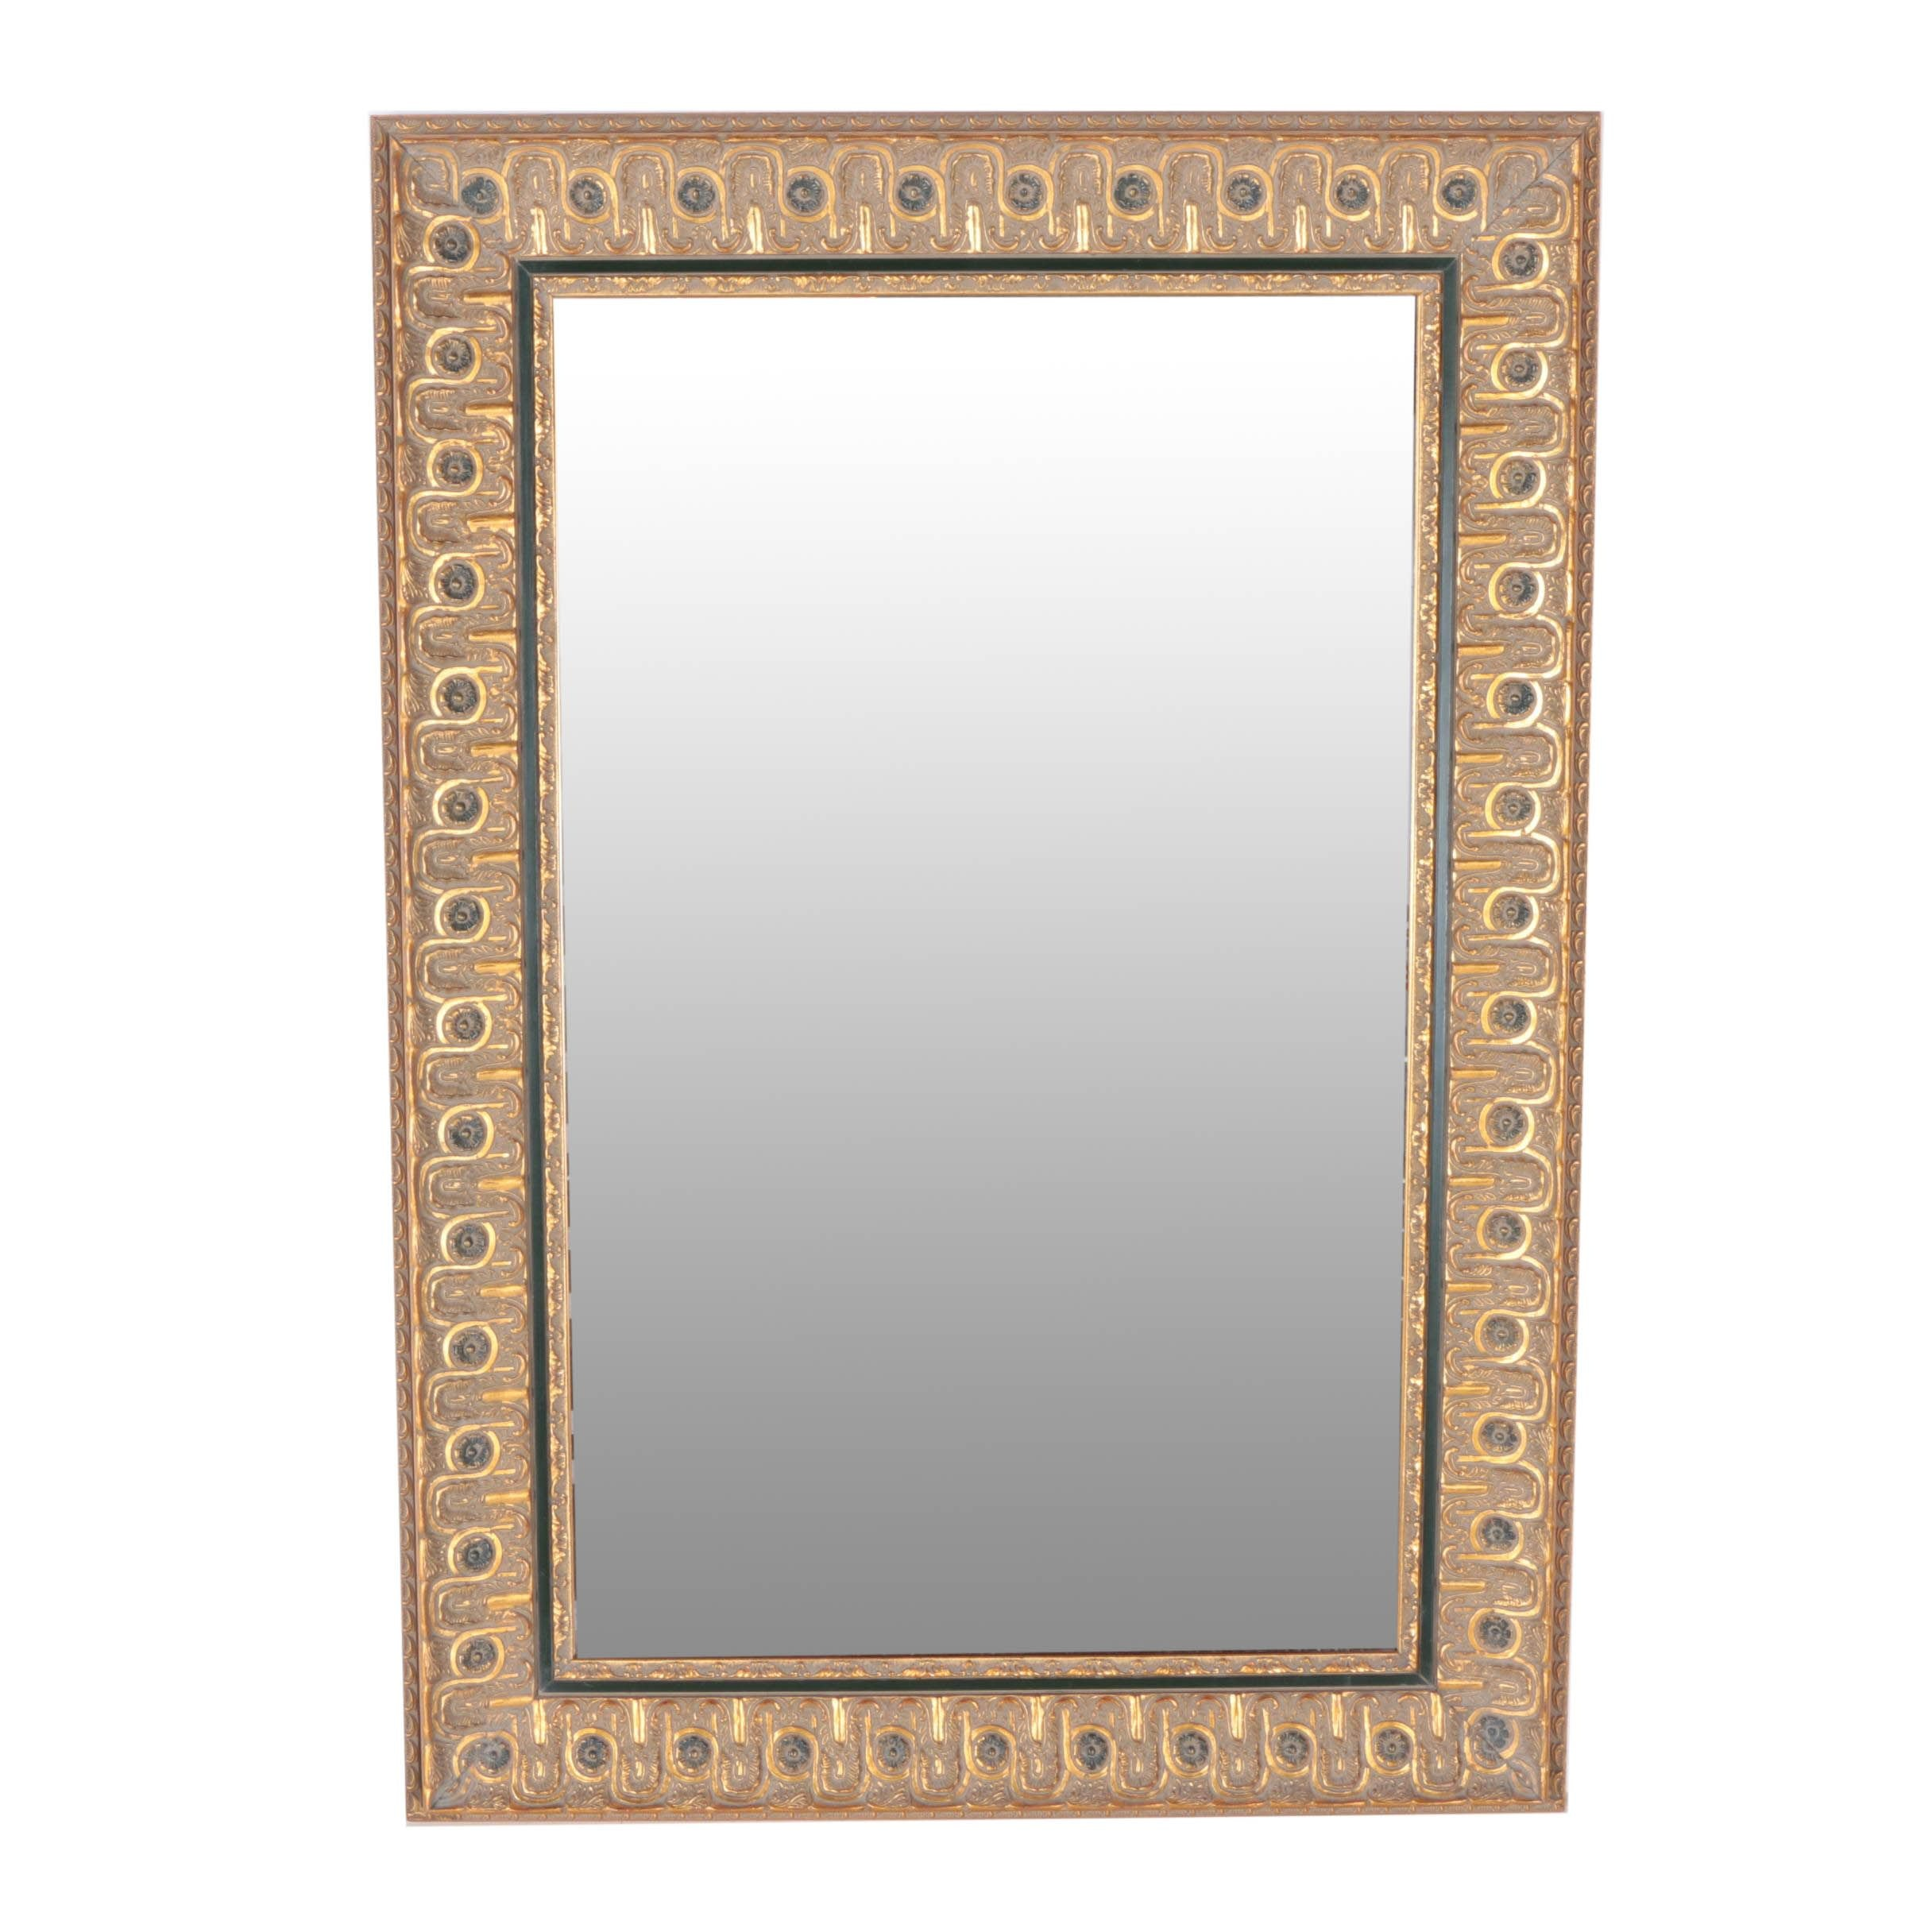 Gold-Tone with Green Accents Wall Mirror